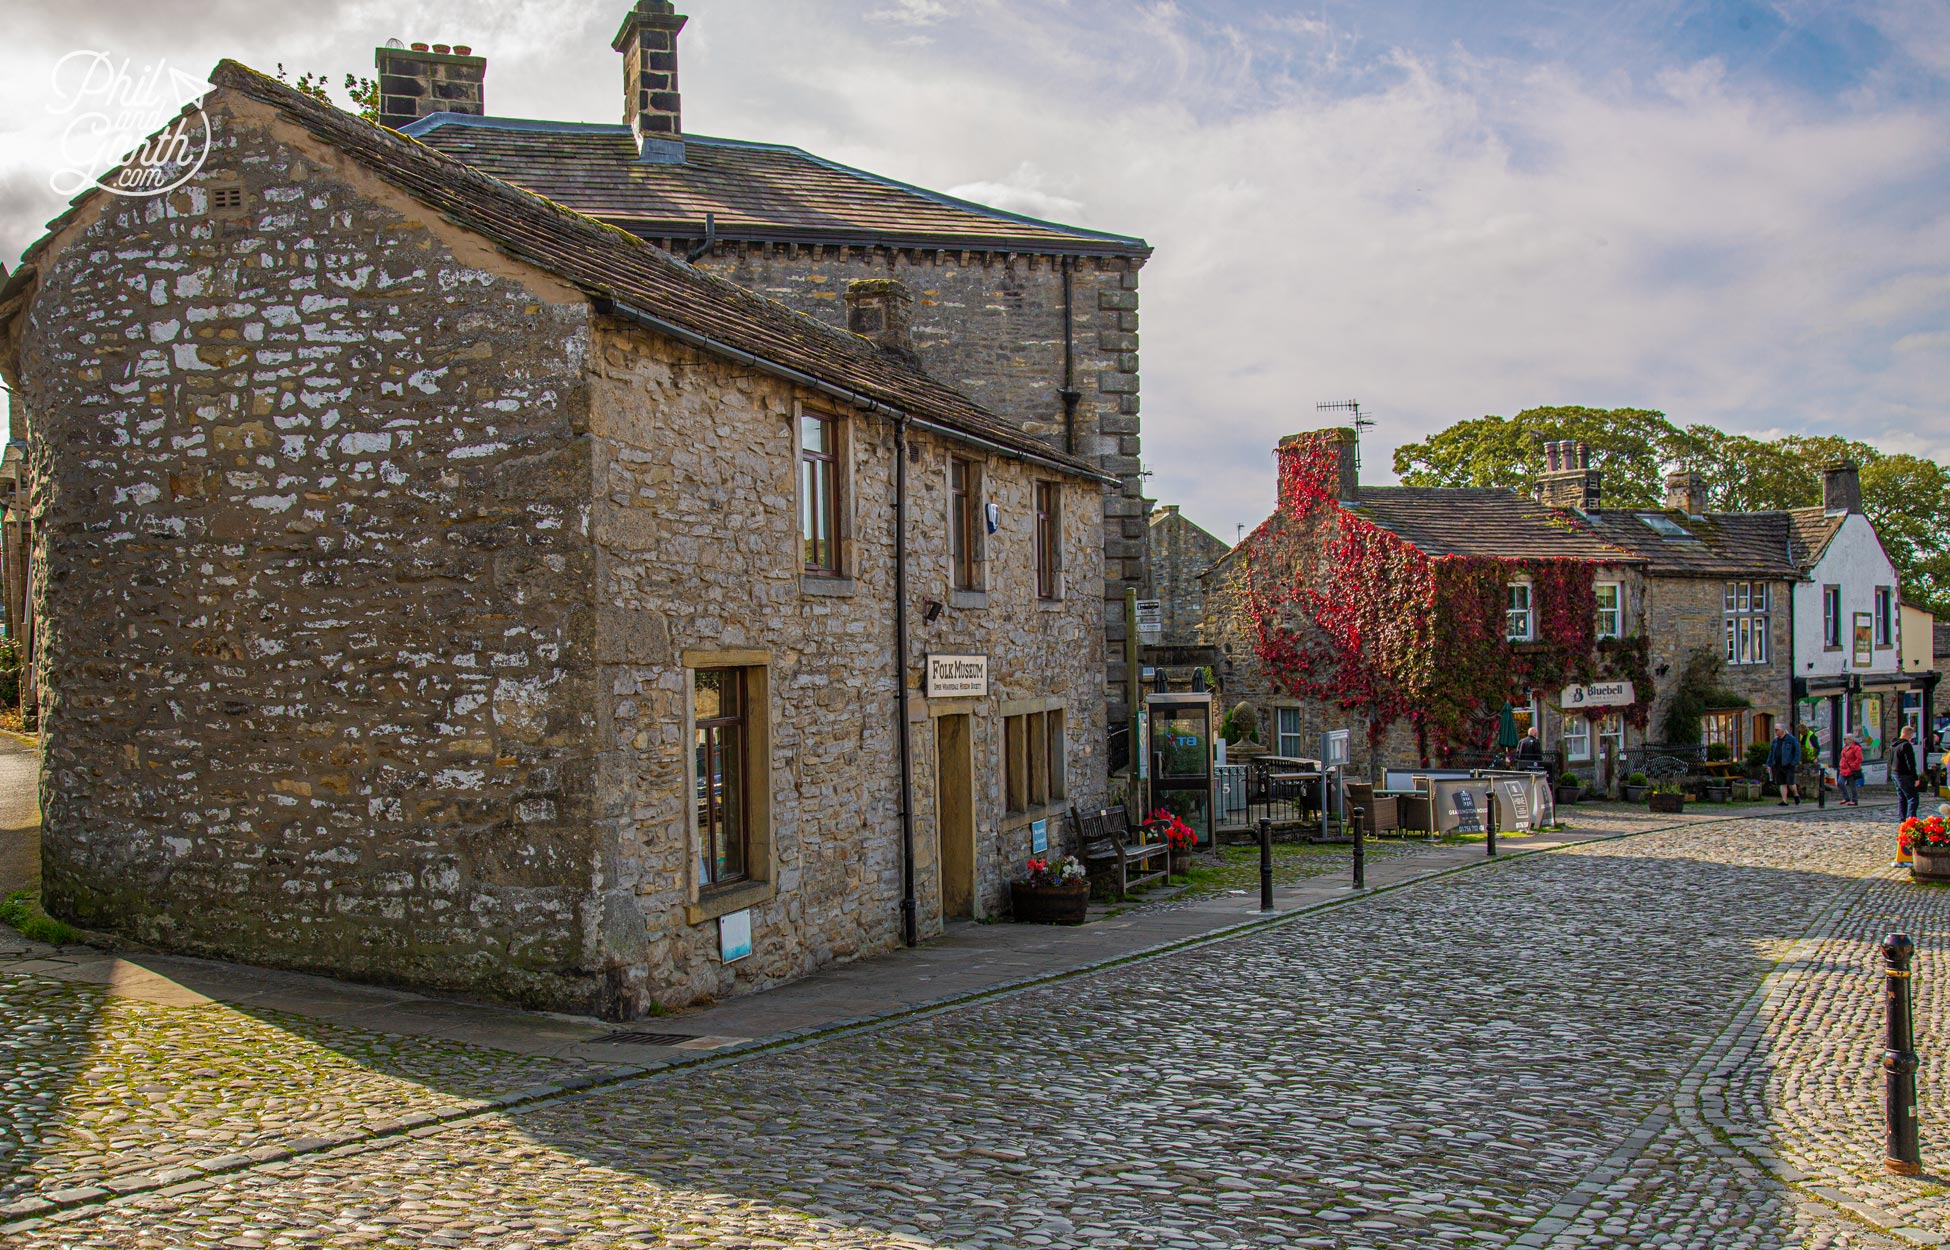 Grassington was used as the filming location for Channel 5's reboot of All Creatures Great and Small